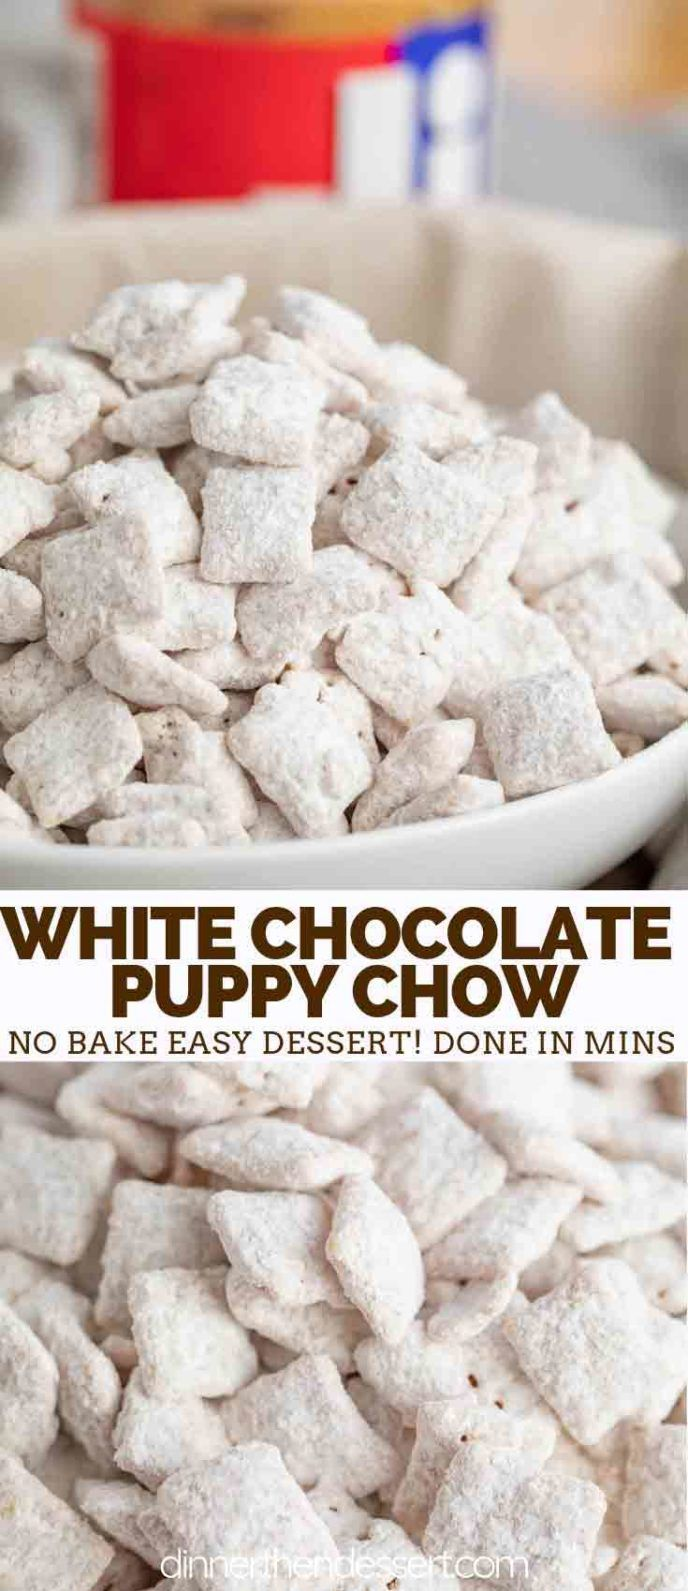 White Chocolate Puppy Chow Muddy Buddies Are Crunchy And Sweet Made With Only 4 Ingredient Puppy Chow Recipes Puppy Chow Chex Mix Recipe Chex Mix Puppy Chow